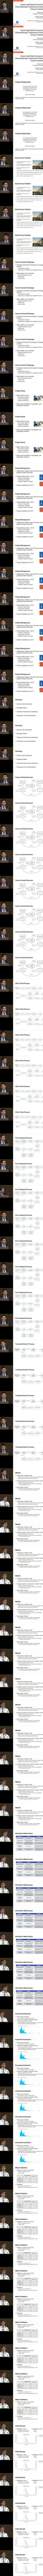 Improving Patient Access to Chemotherapy Treatment at Duke Cancer